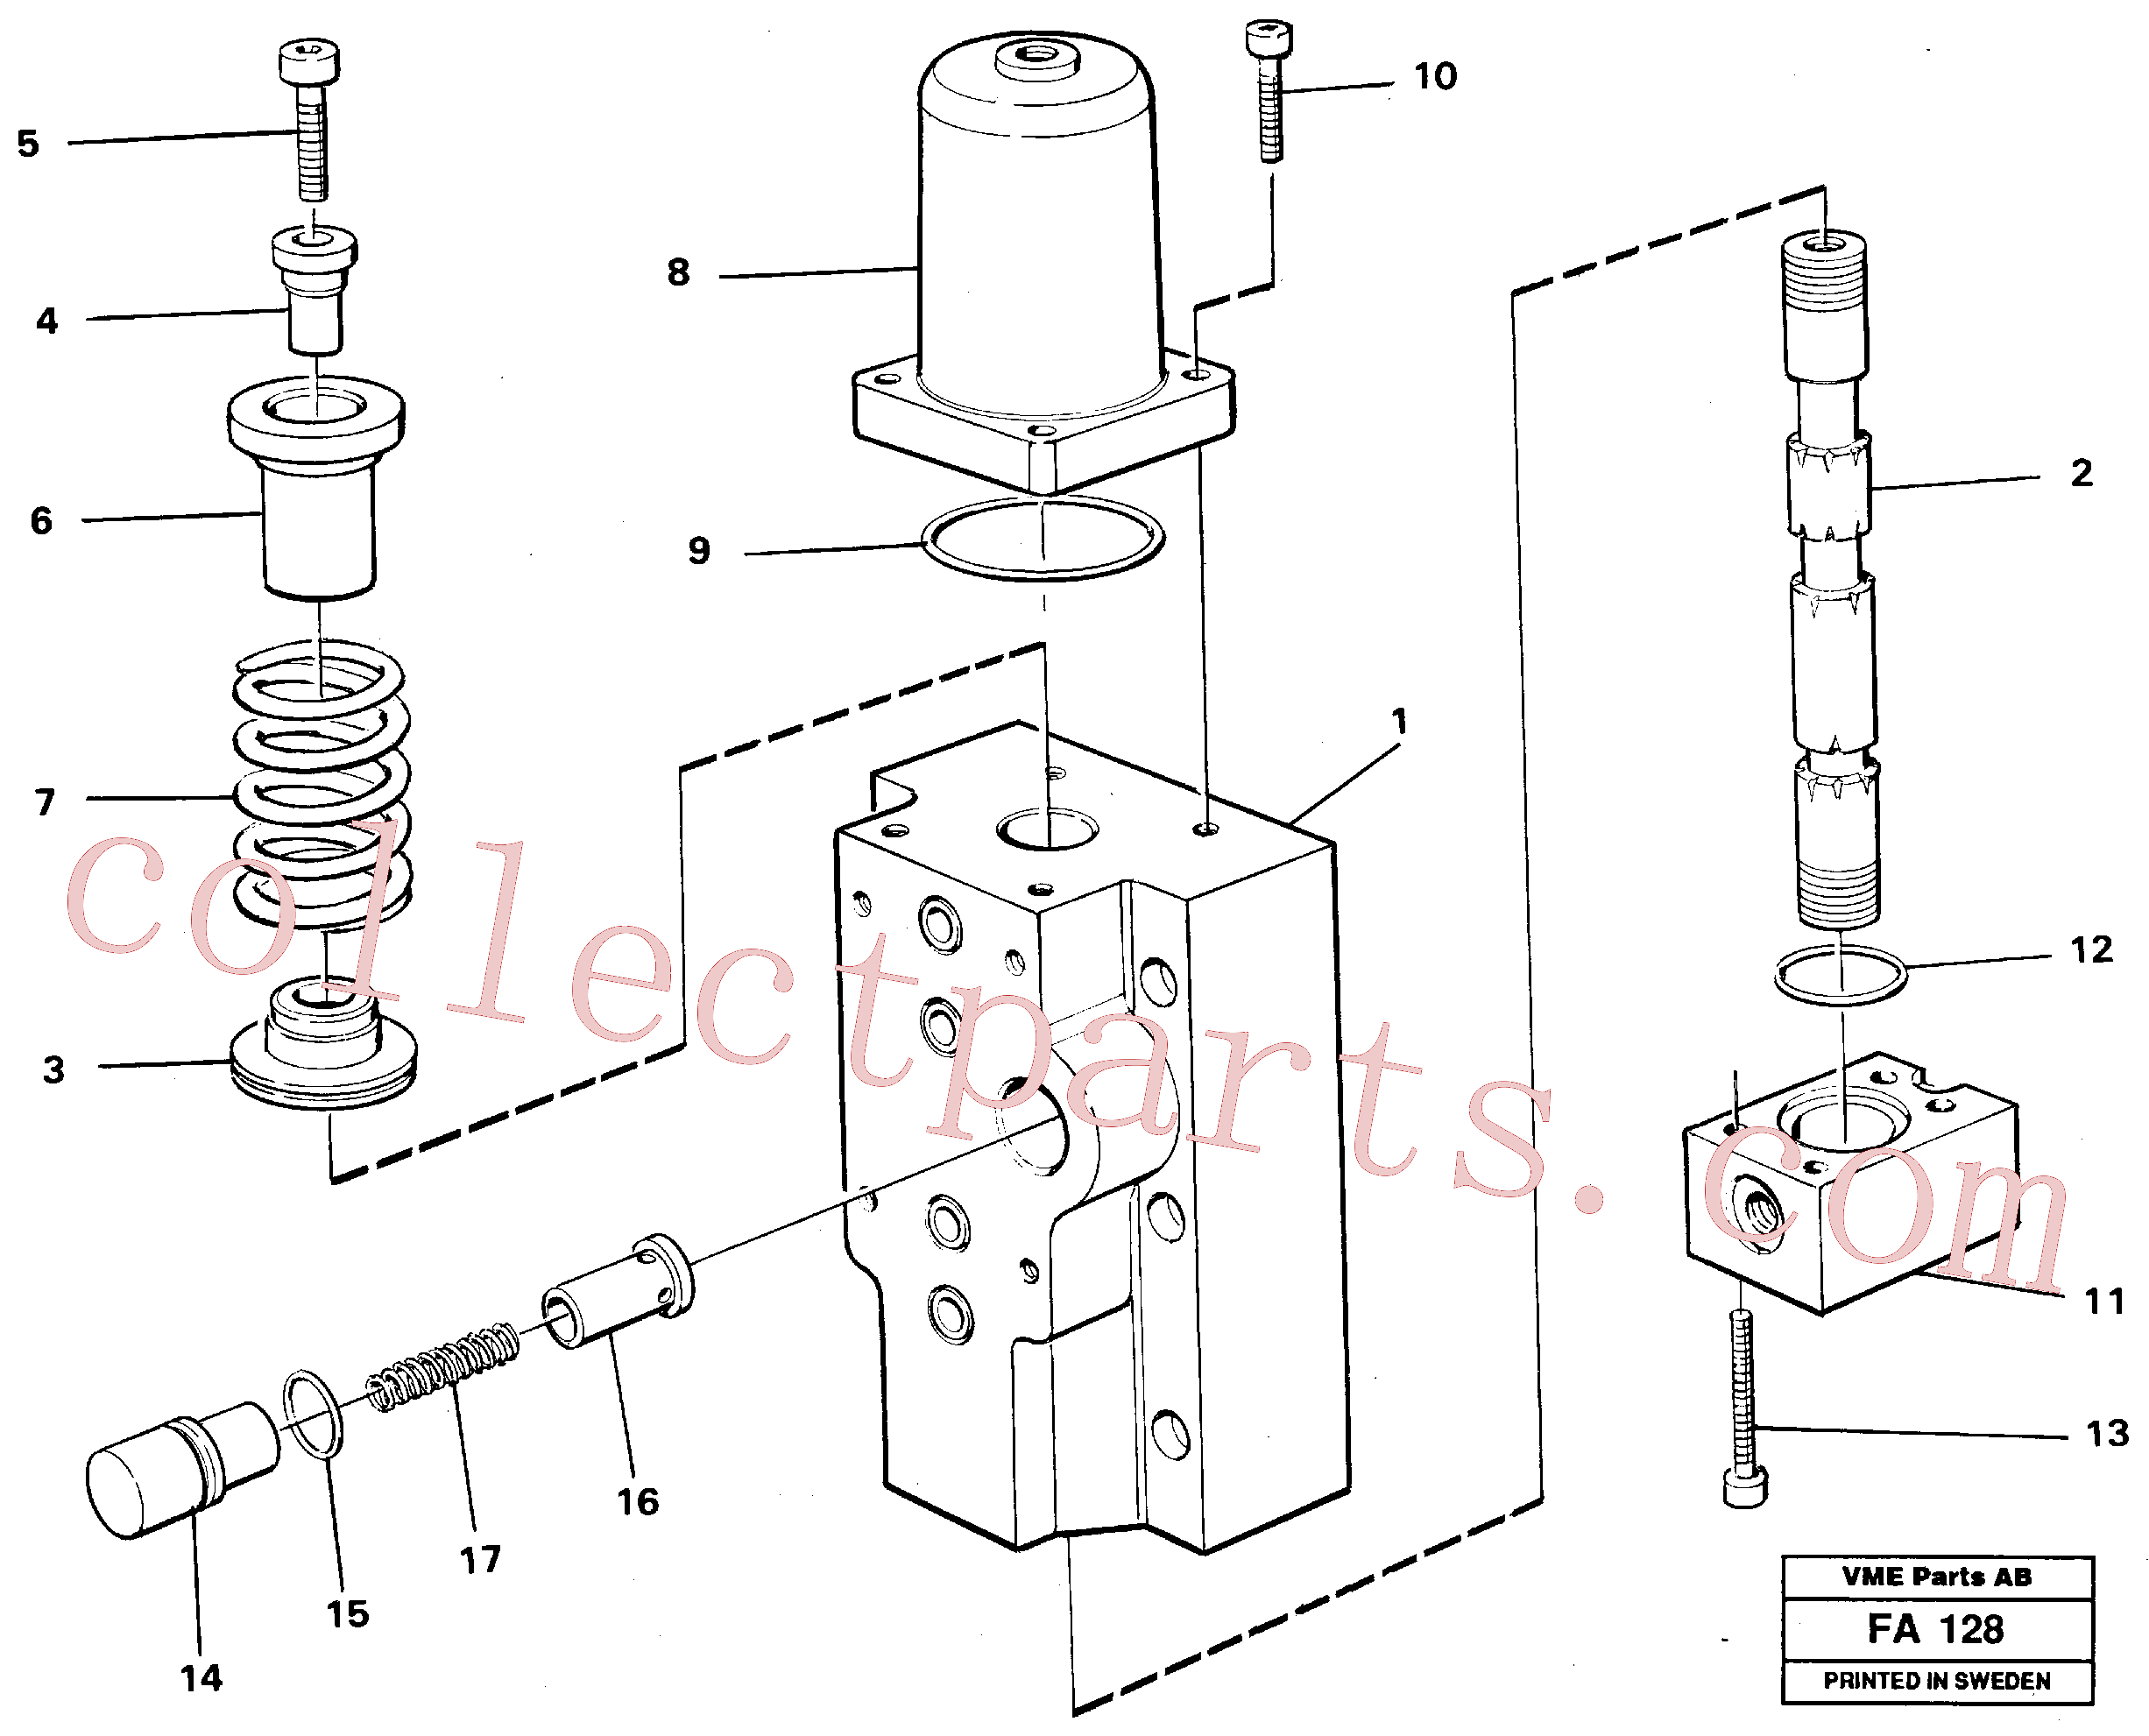 VOE14261819 for Volvo Four-way valve for hammer/shears, Four-way valves Primary(FA128 assembly)